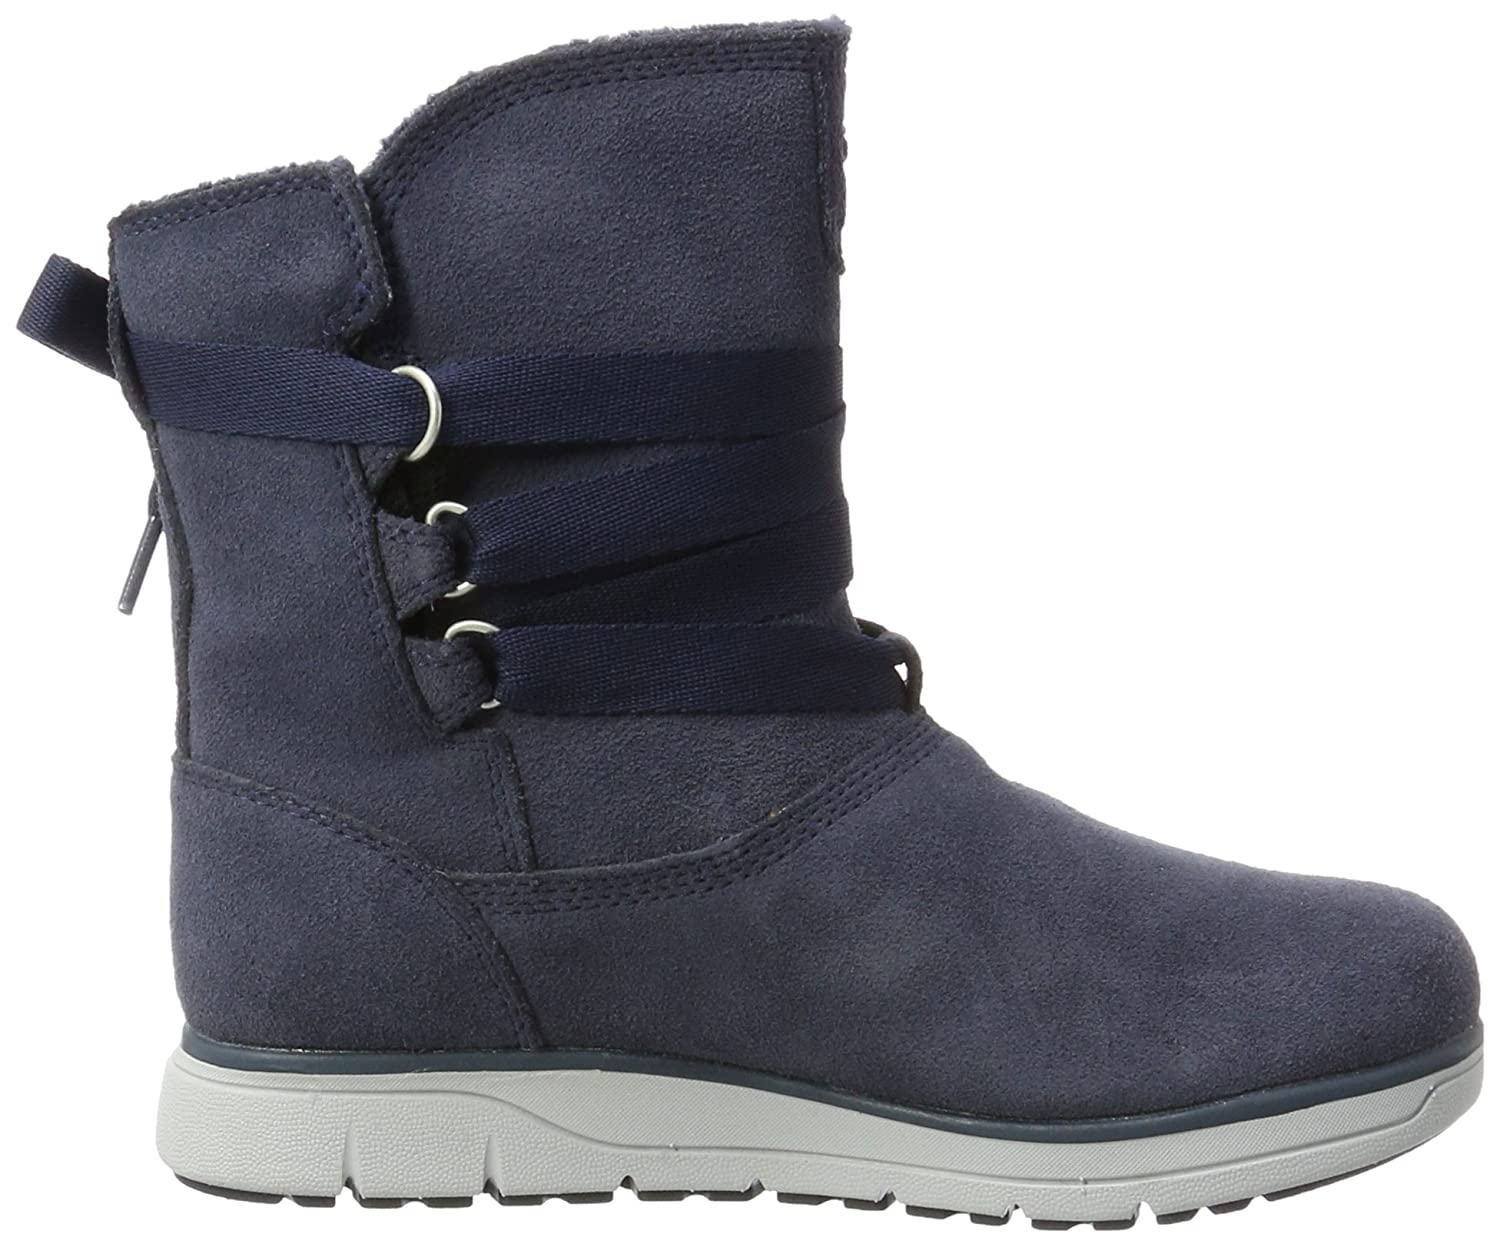 Bota impermeable Timberland Leighland Pull On para mujer